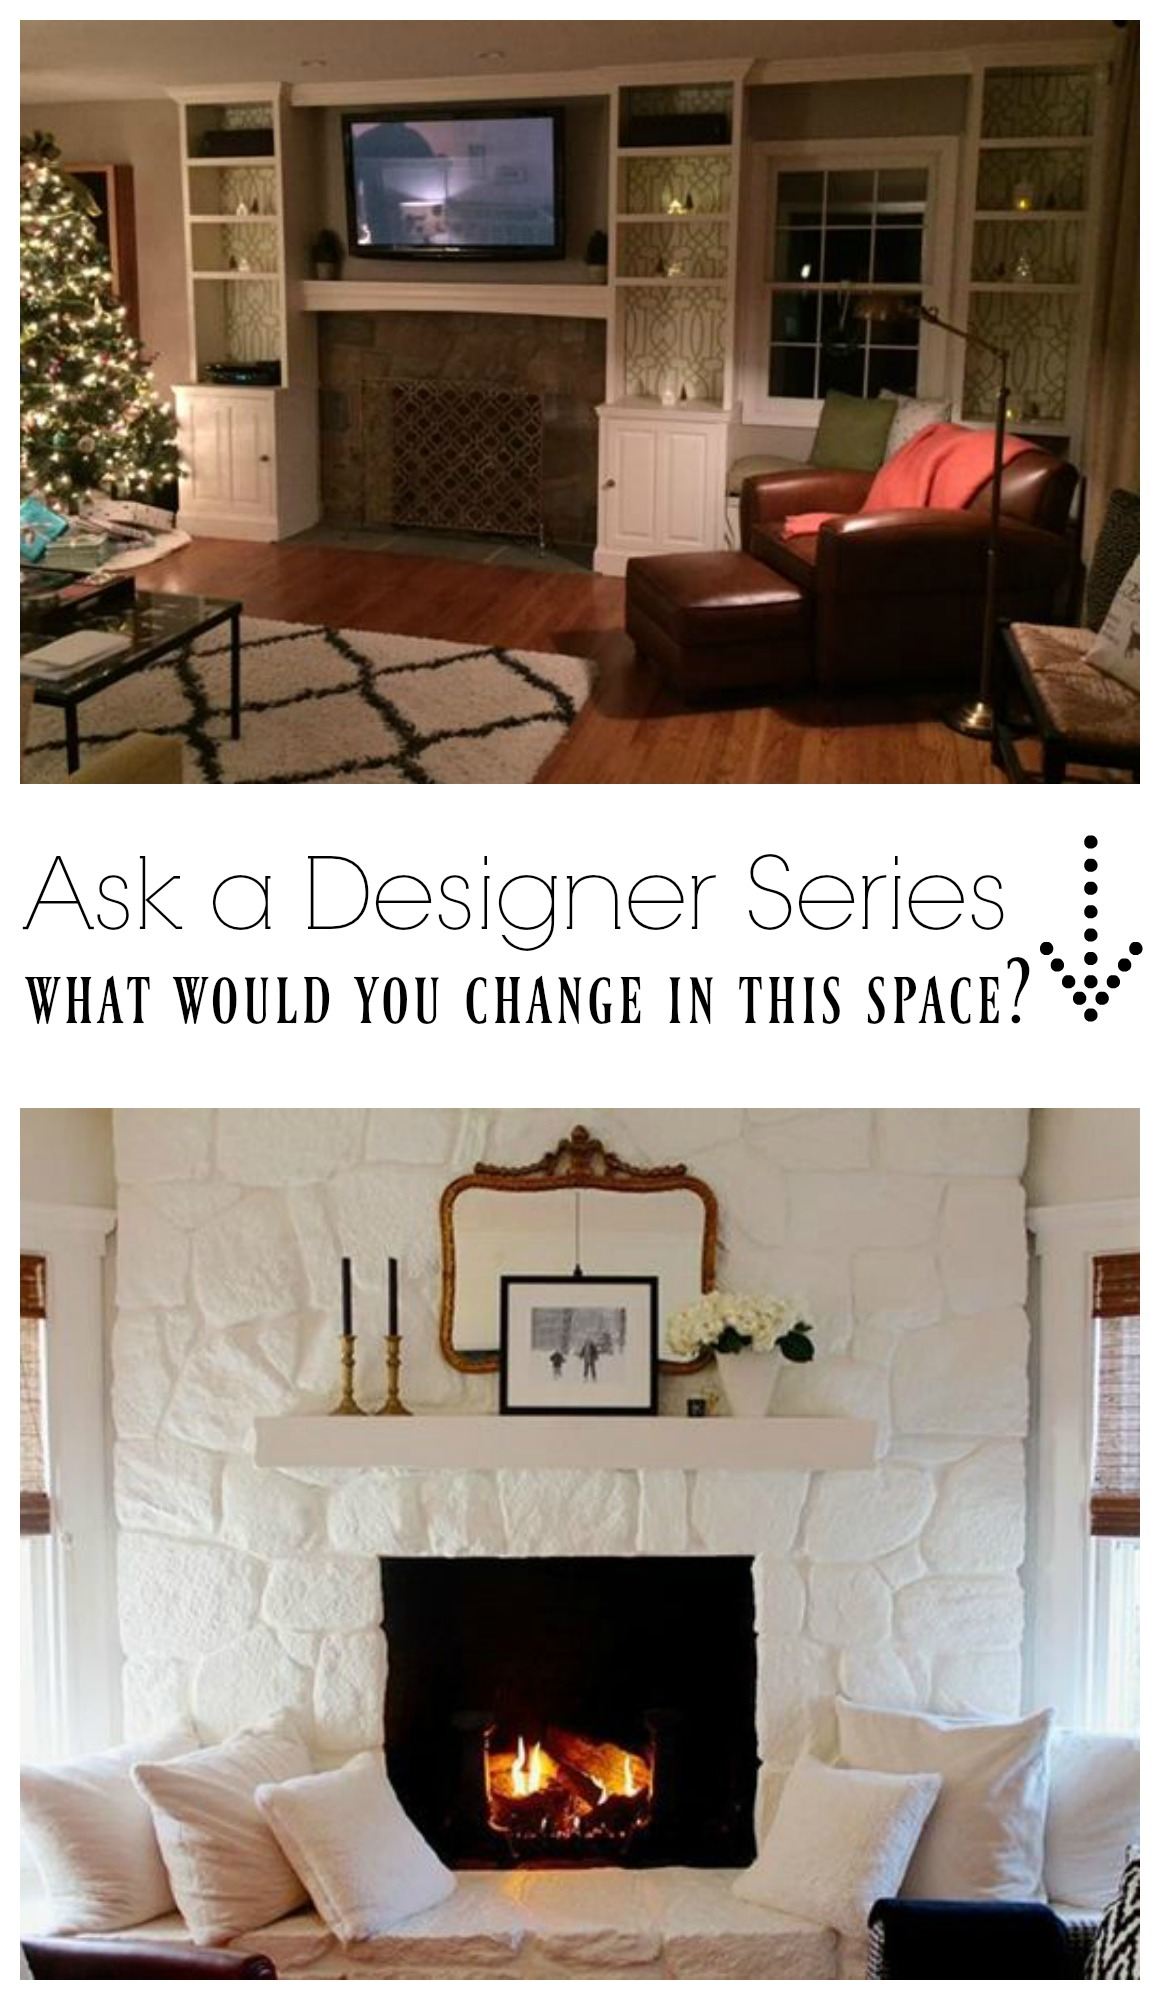 Ask a Designer Series- What would you change? Paint the Rock Fireplace?